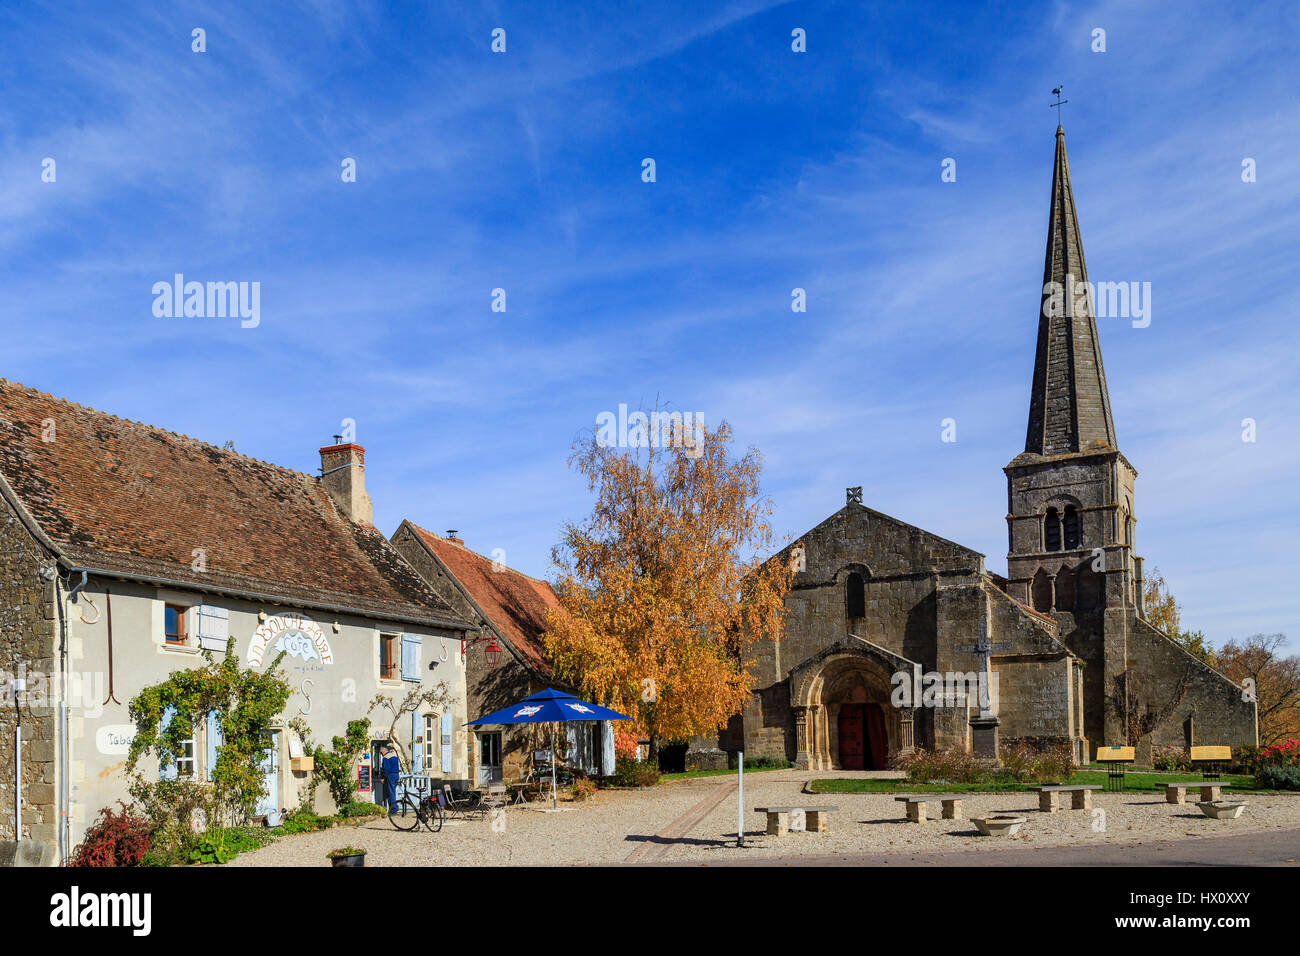 France, Allier, Autry-Issards, church and Cafe on the little square - Stock Image